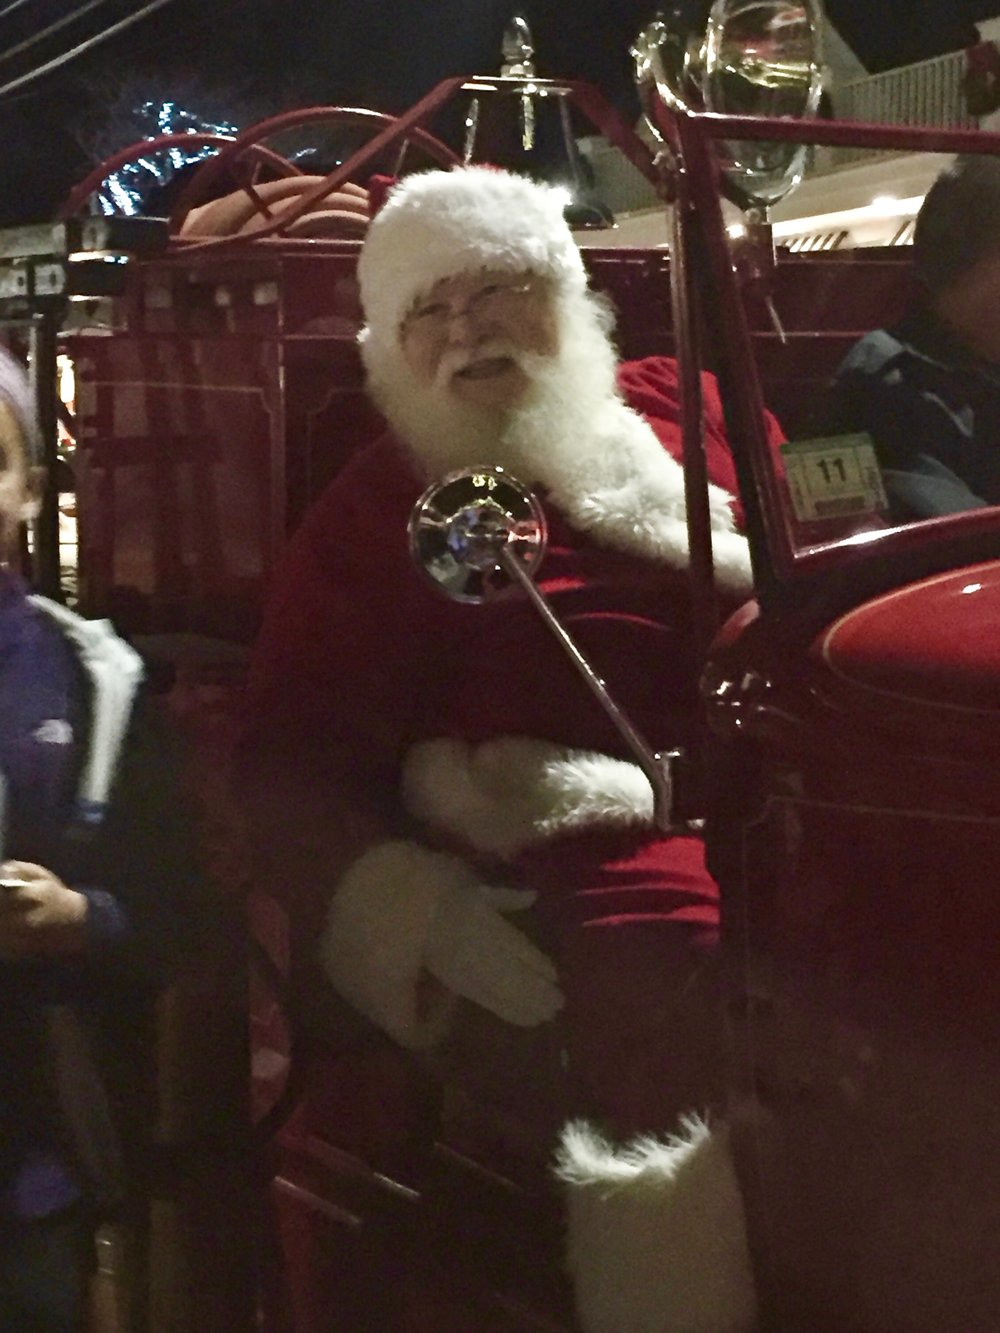 We even got a quick glimpse of Santa Claus!